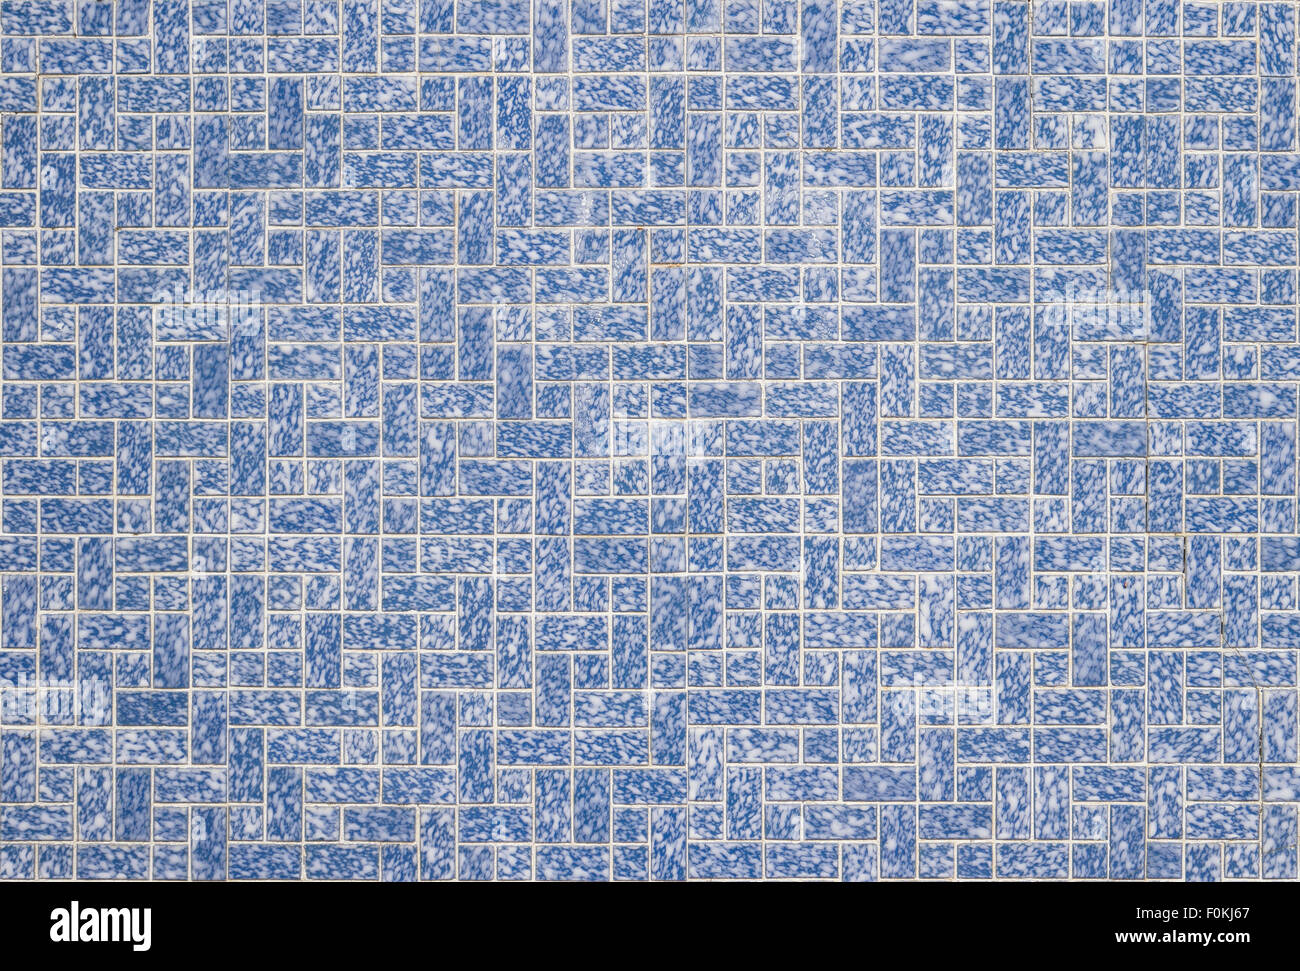 Blue Bathroom Tile Texture tile texture background of bathroom or swimming pool tiles on wall